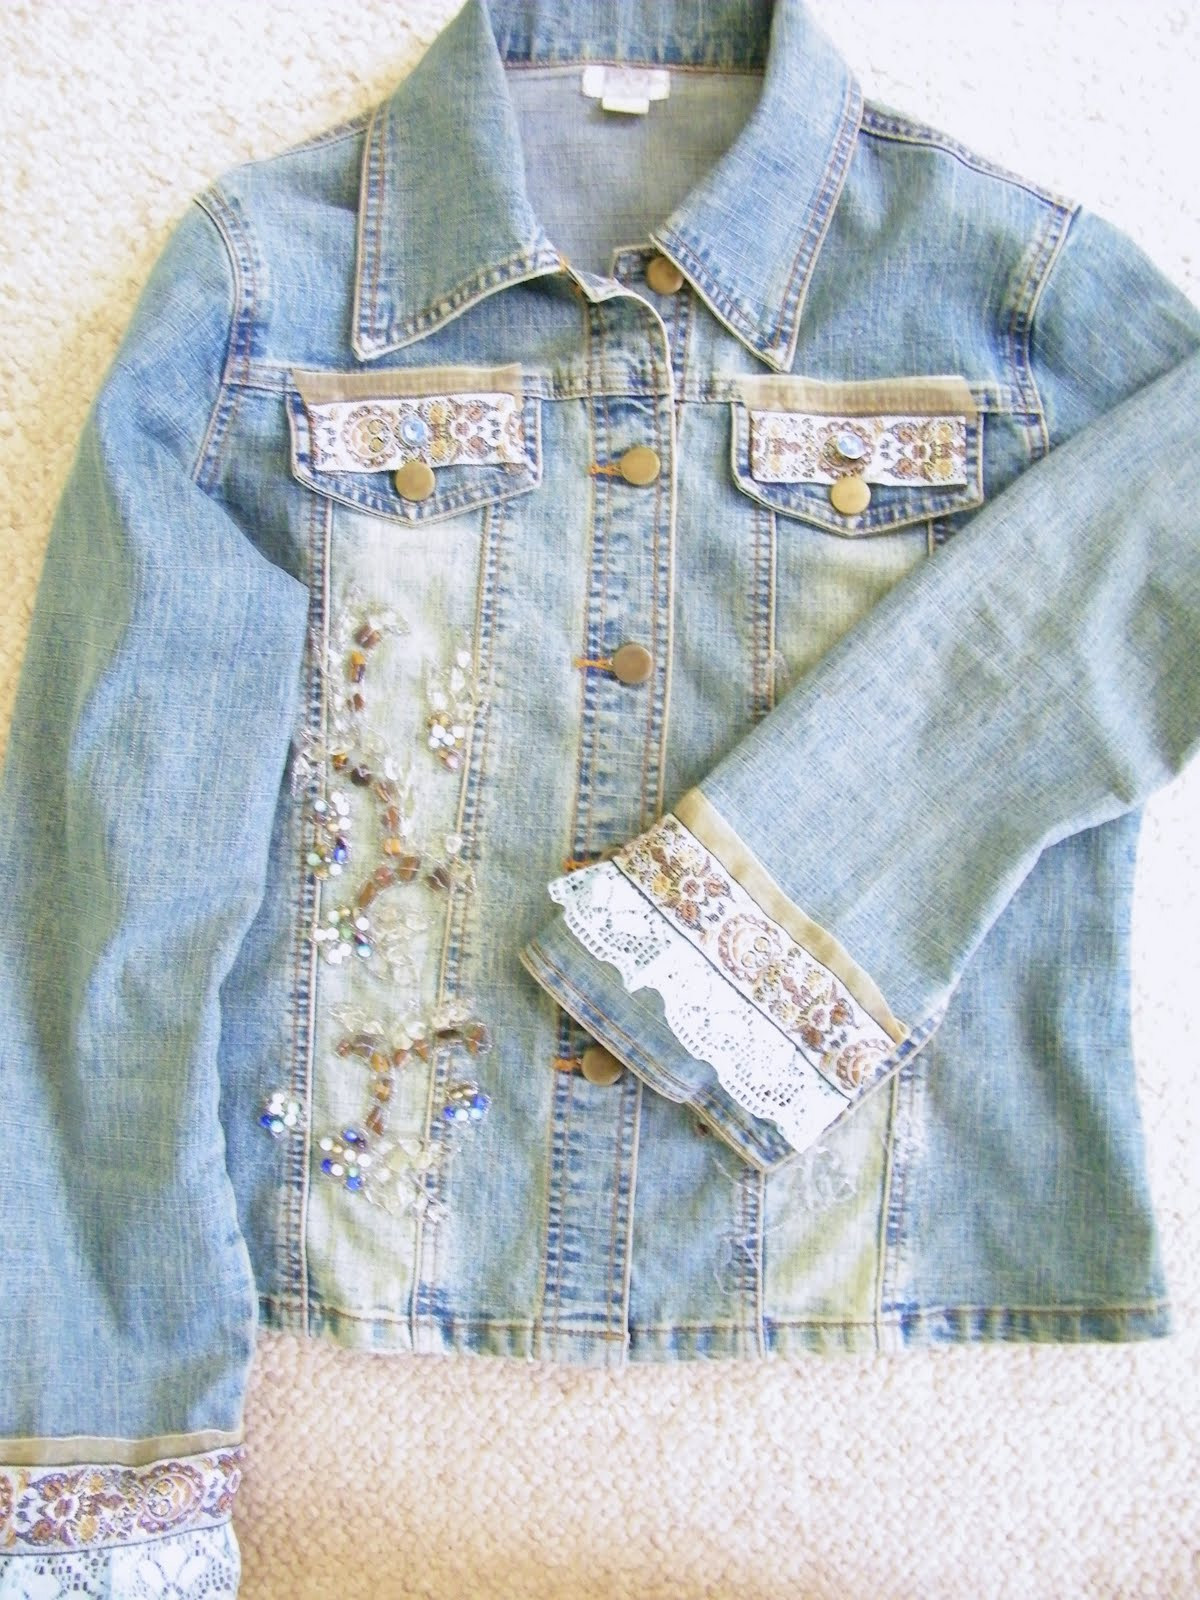 Maison Decor Add Some Bling To A Jean Jacket